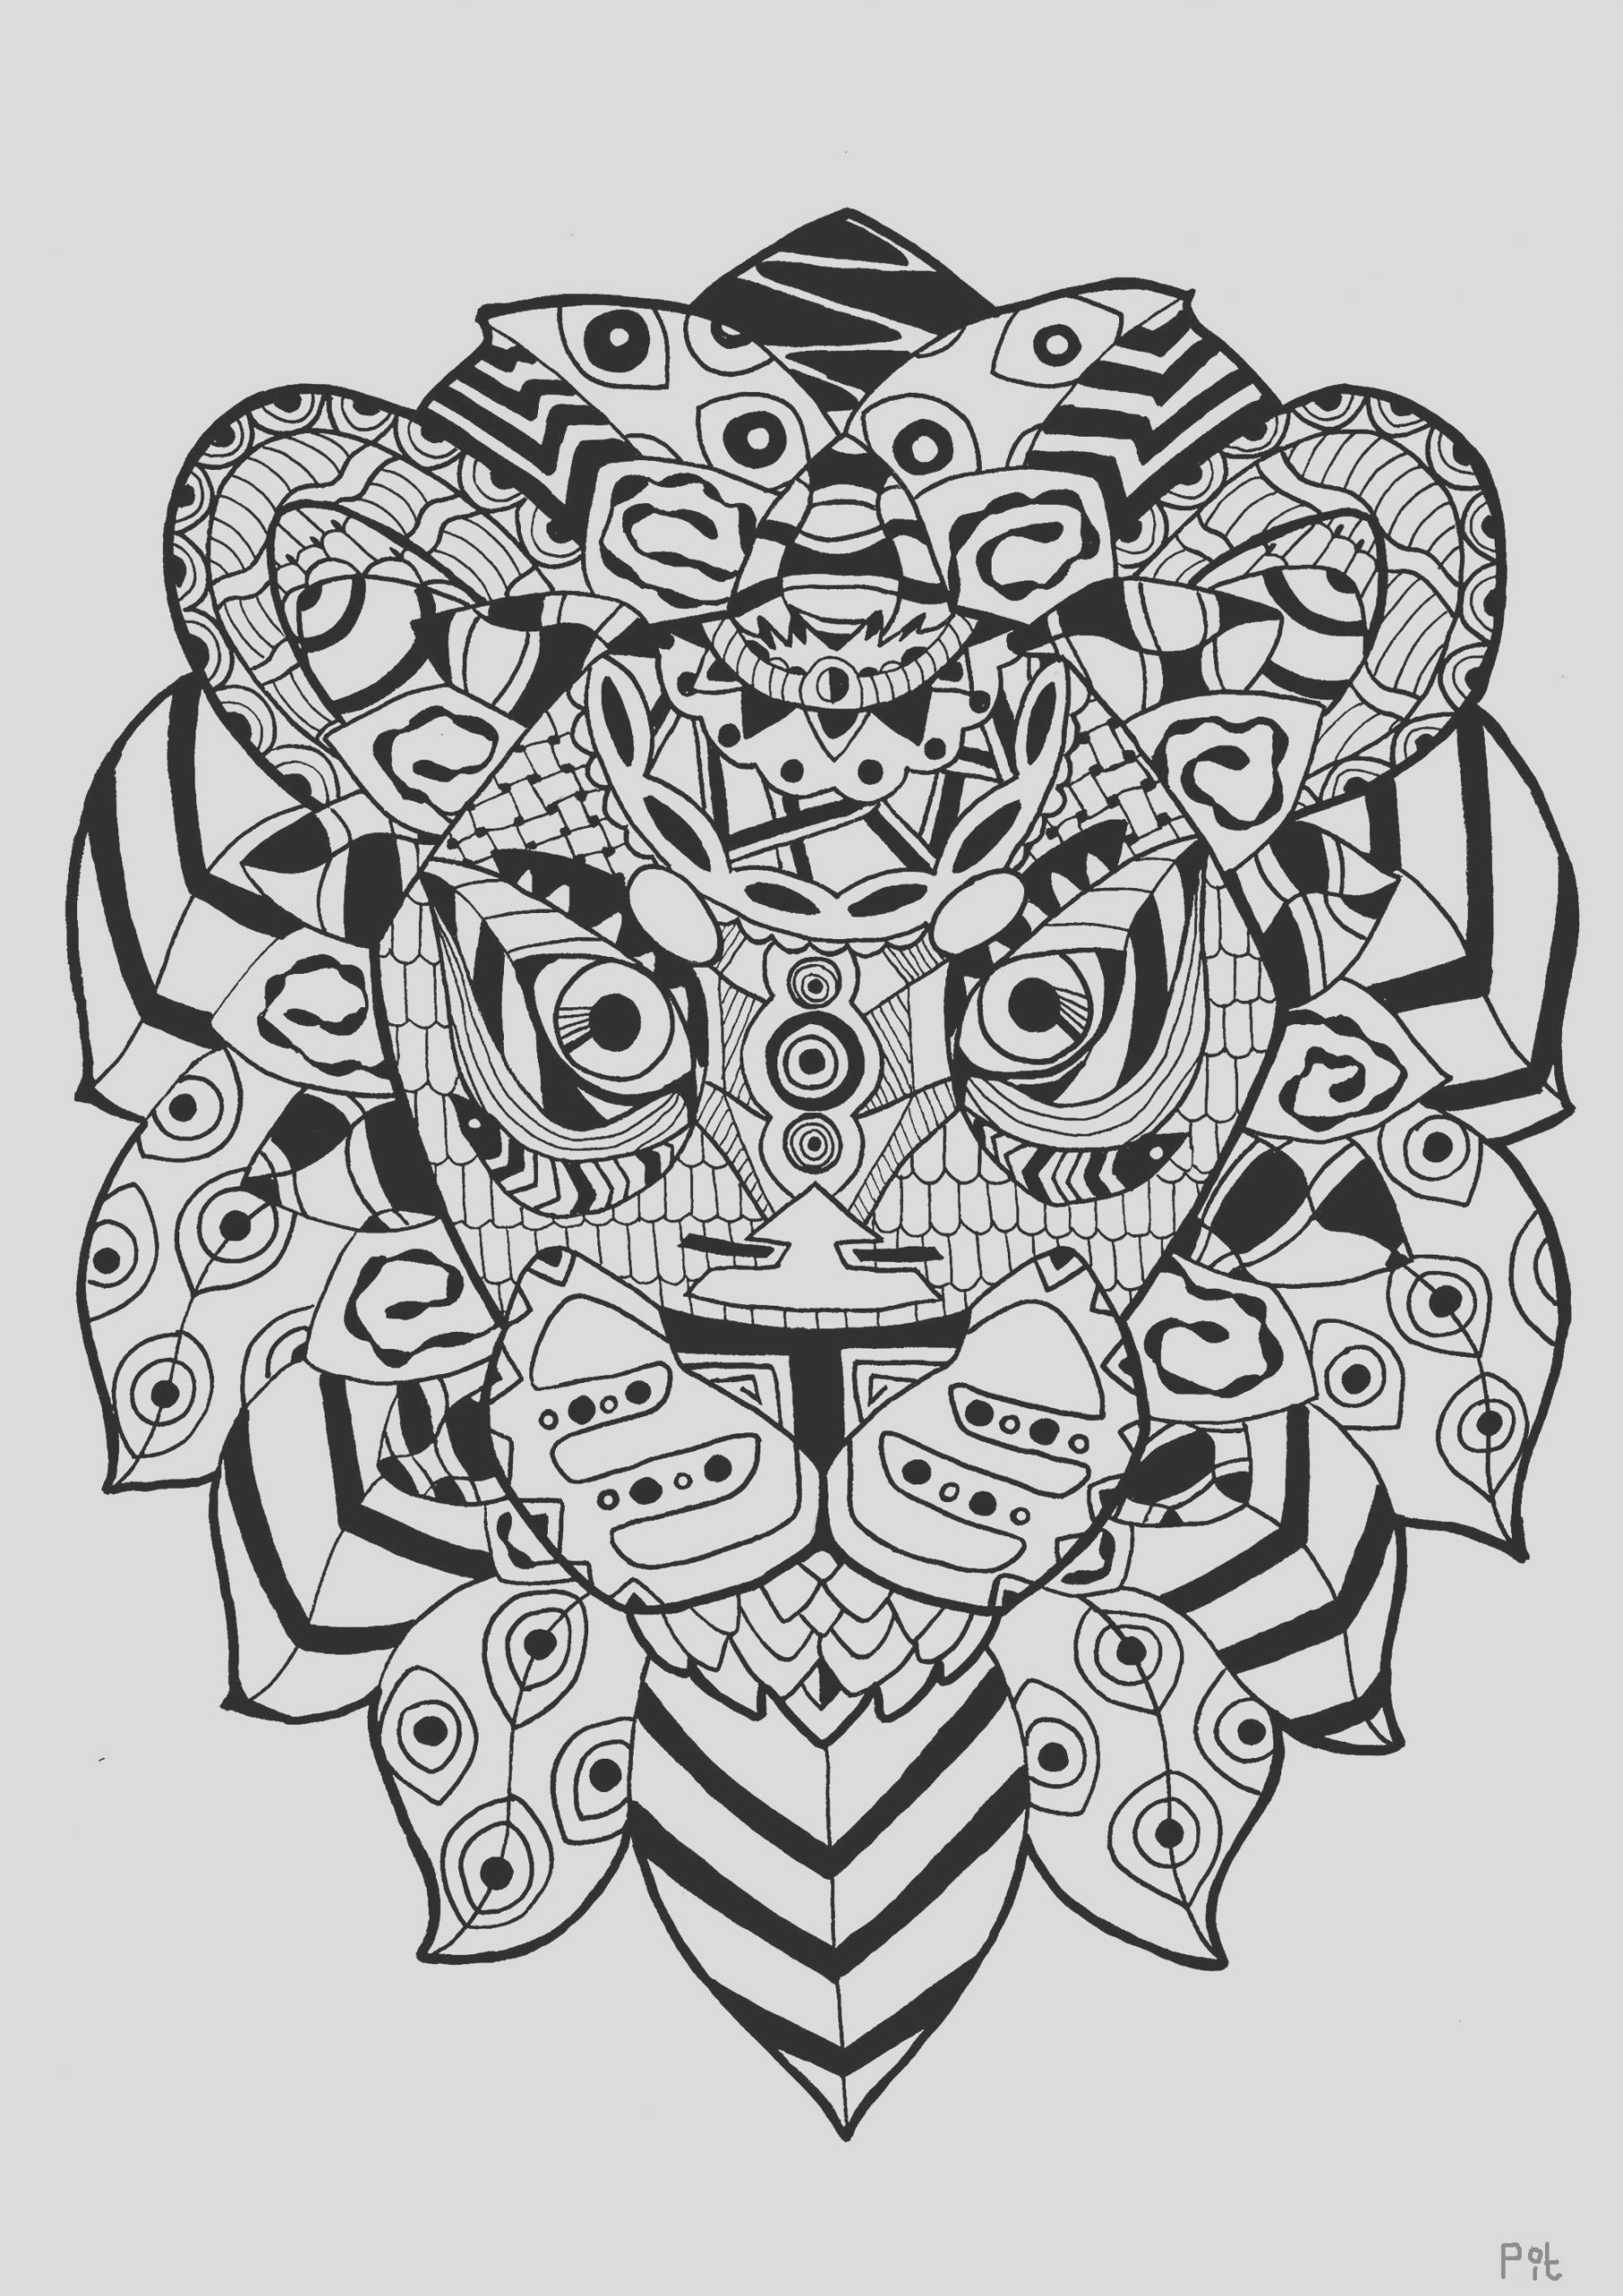 image=lions coloring page adult zentangle lion 1